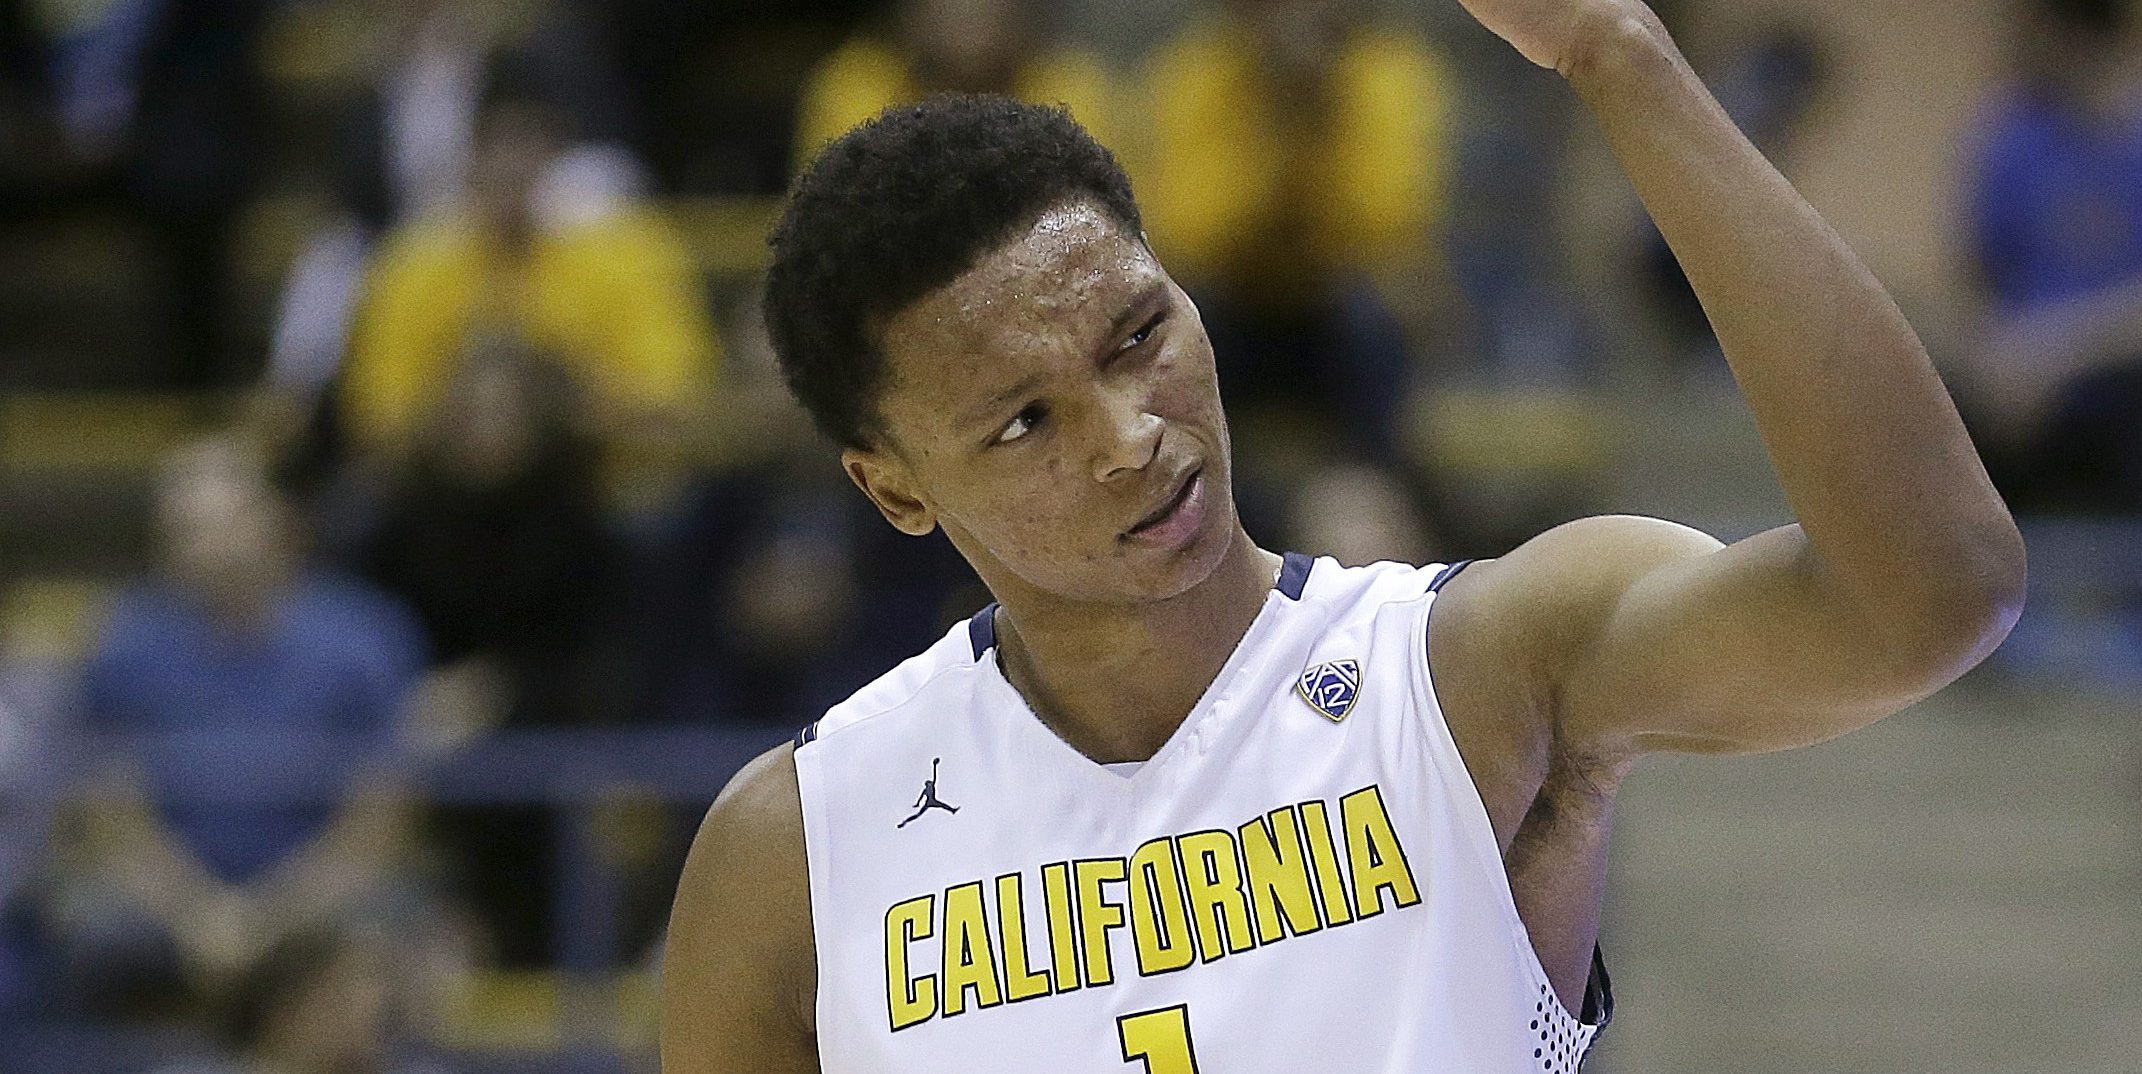 California's Ivan Rabb encourages the crowd to cheer in the second half of an NCAA college basketball game against Saint Mary's Saturday, Dec. 12, 2015, in Berkeley, Calif. (AP Photo/Ben Margot)